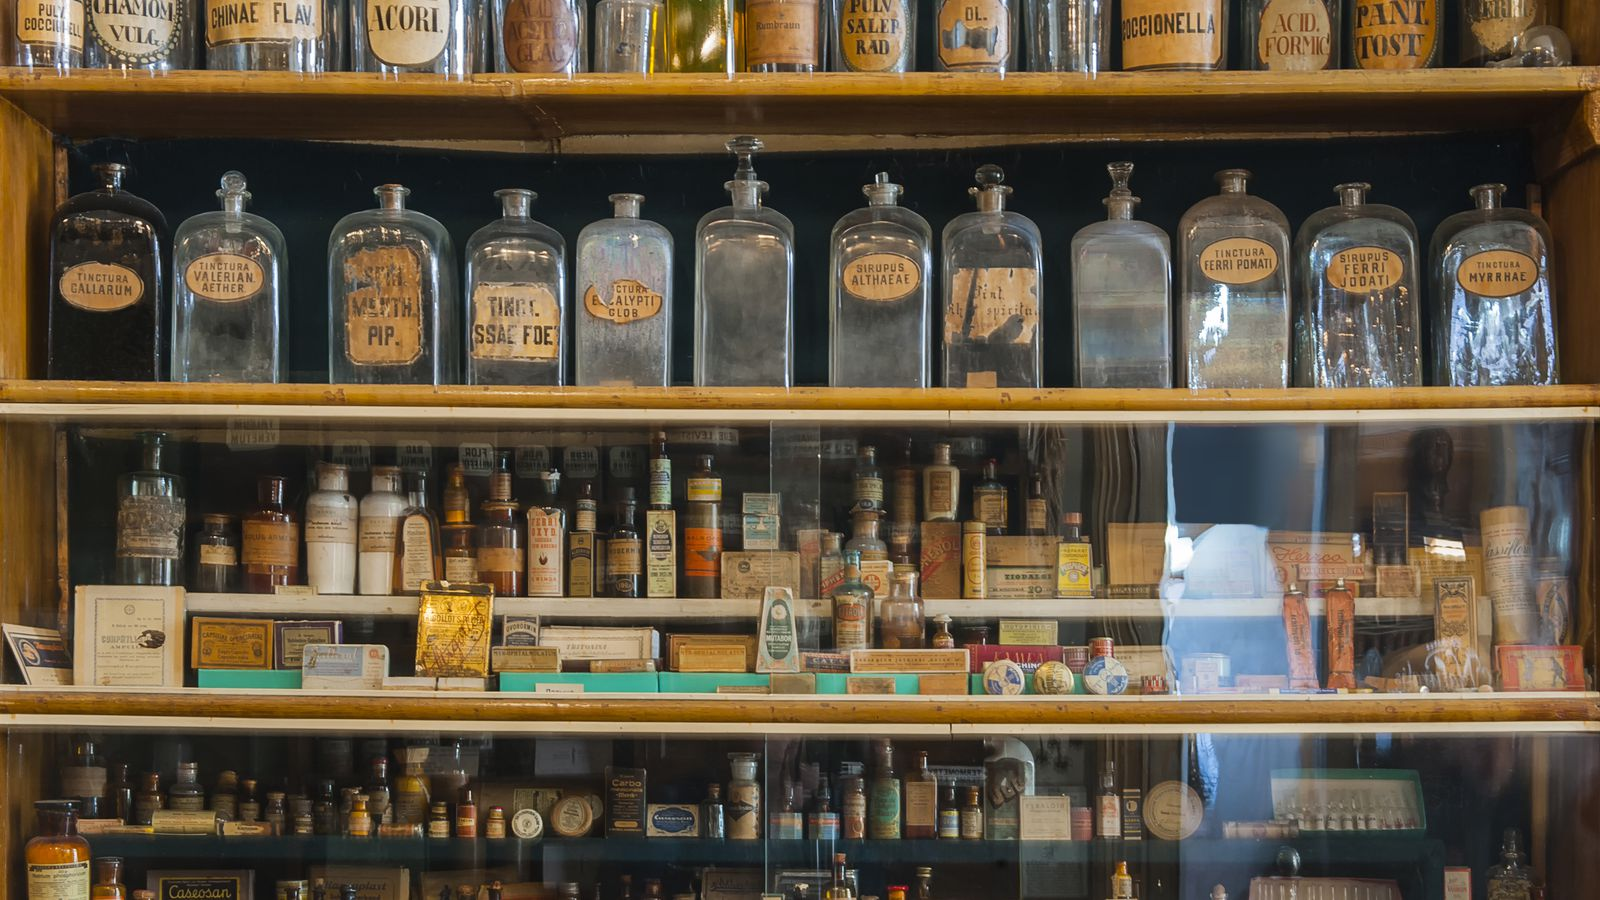 How The Apothecary Gave Birth To The Modern Cocktail